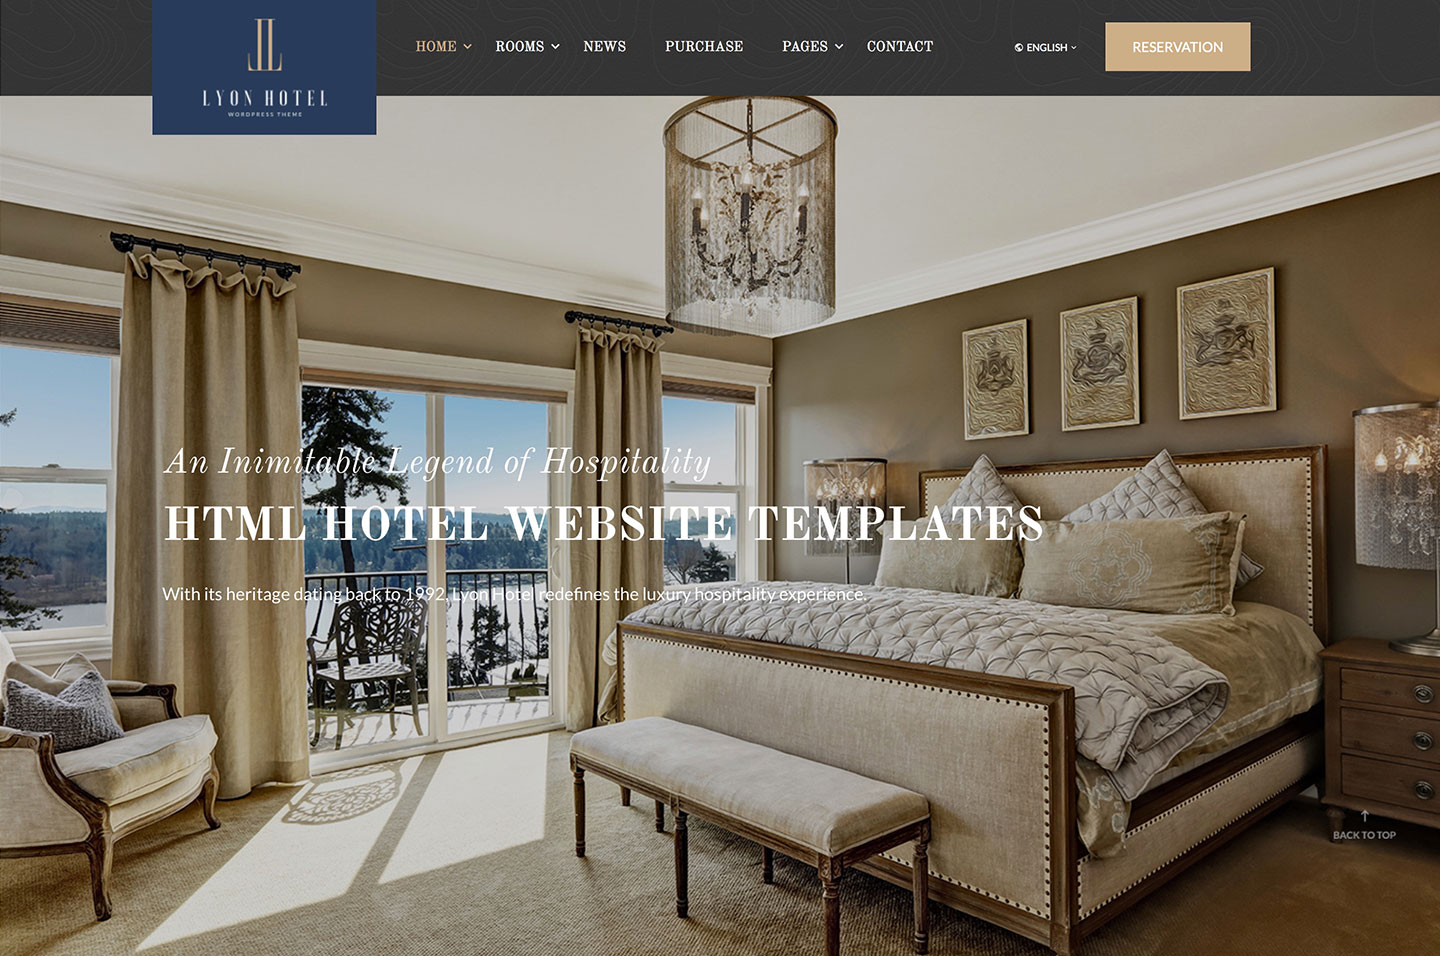 21 top html5 hotel booking website templates 2018 colorlib for House building website